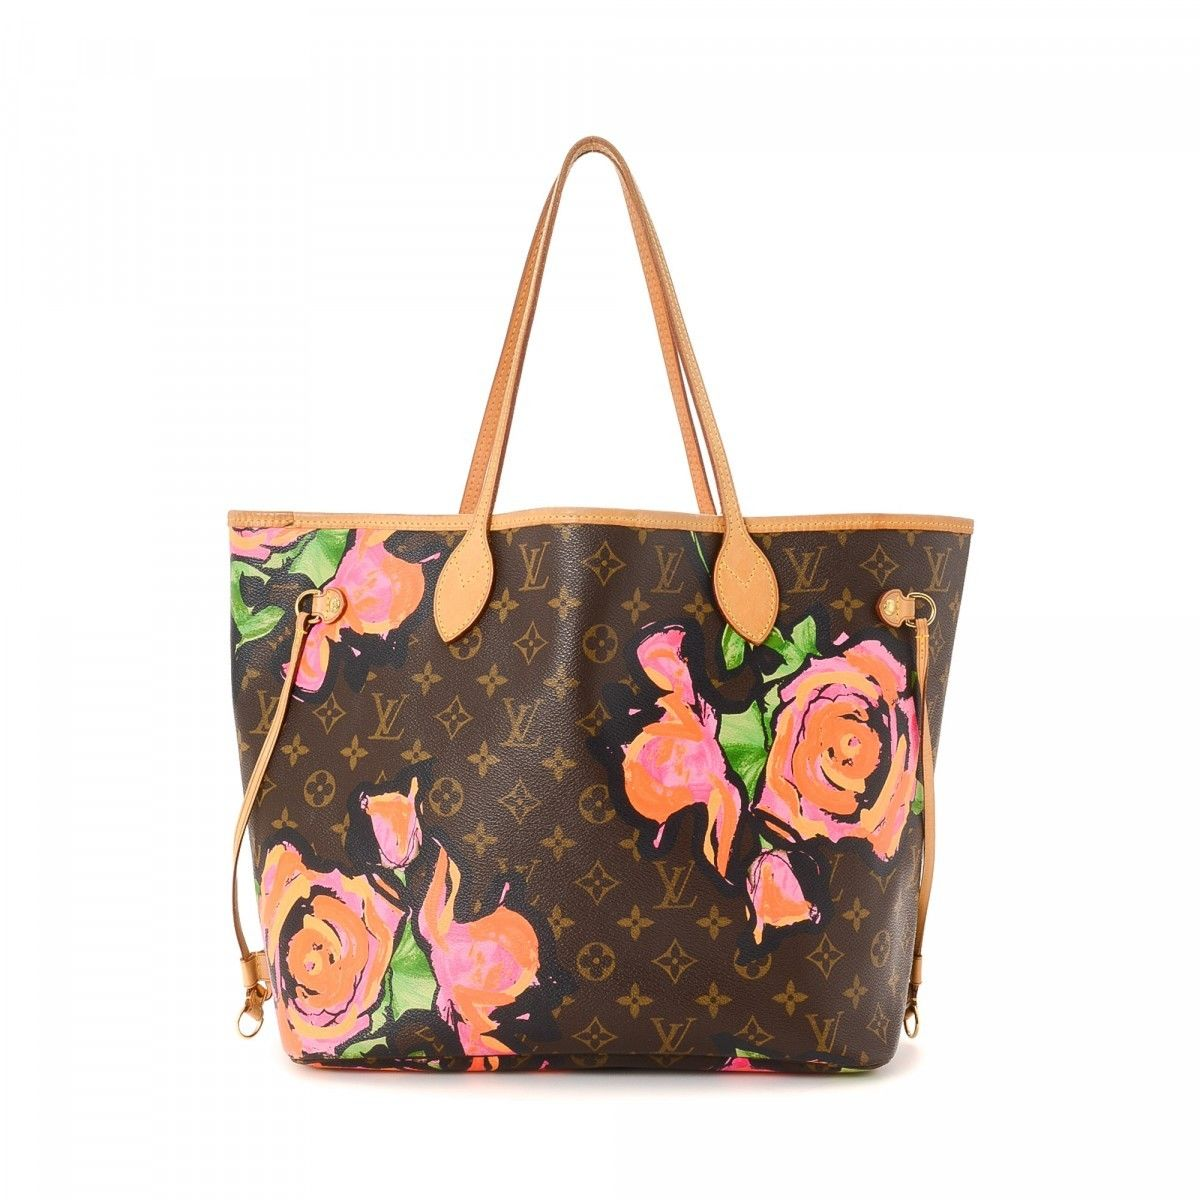 Louis Vuitton Neverfull Mm Stephen Sprouse Limited Edition Monogram Roses Coated Canvas Lxrandco Pre Owned Luxury Vintage